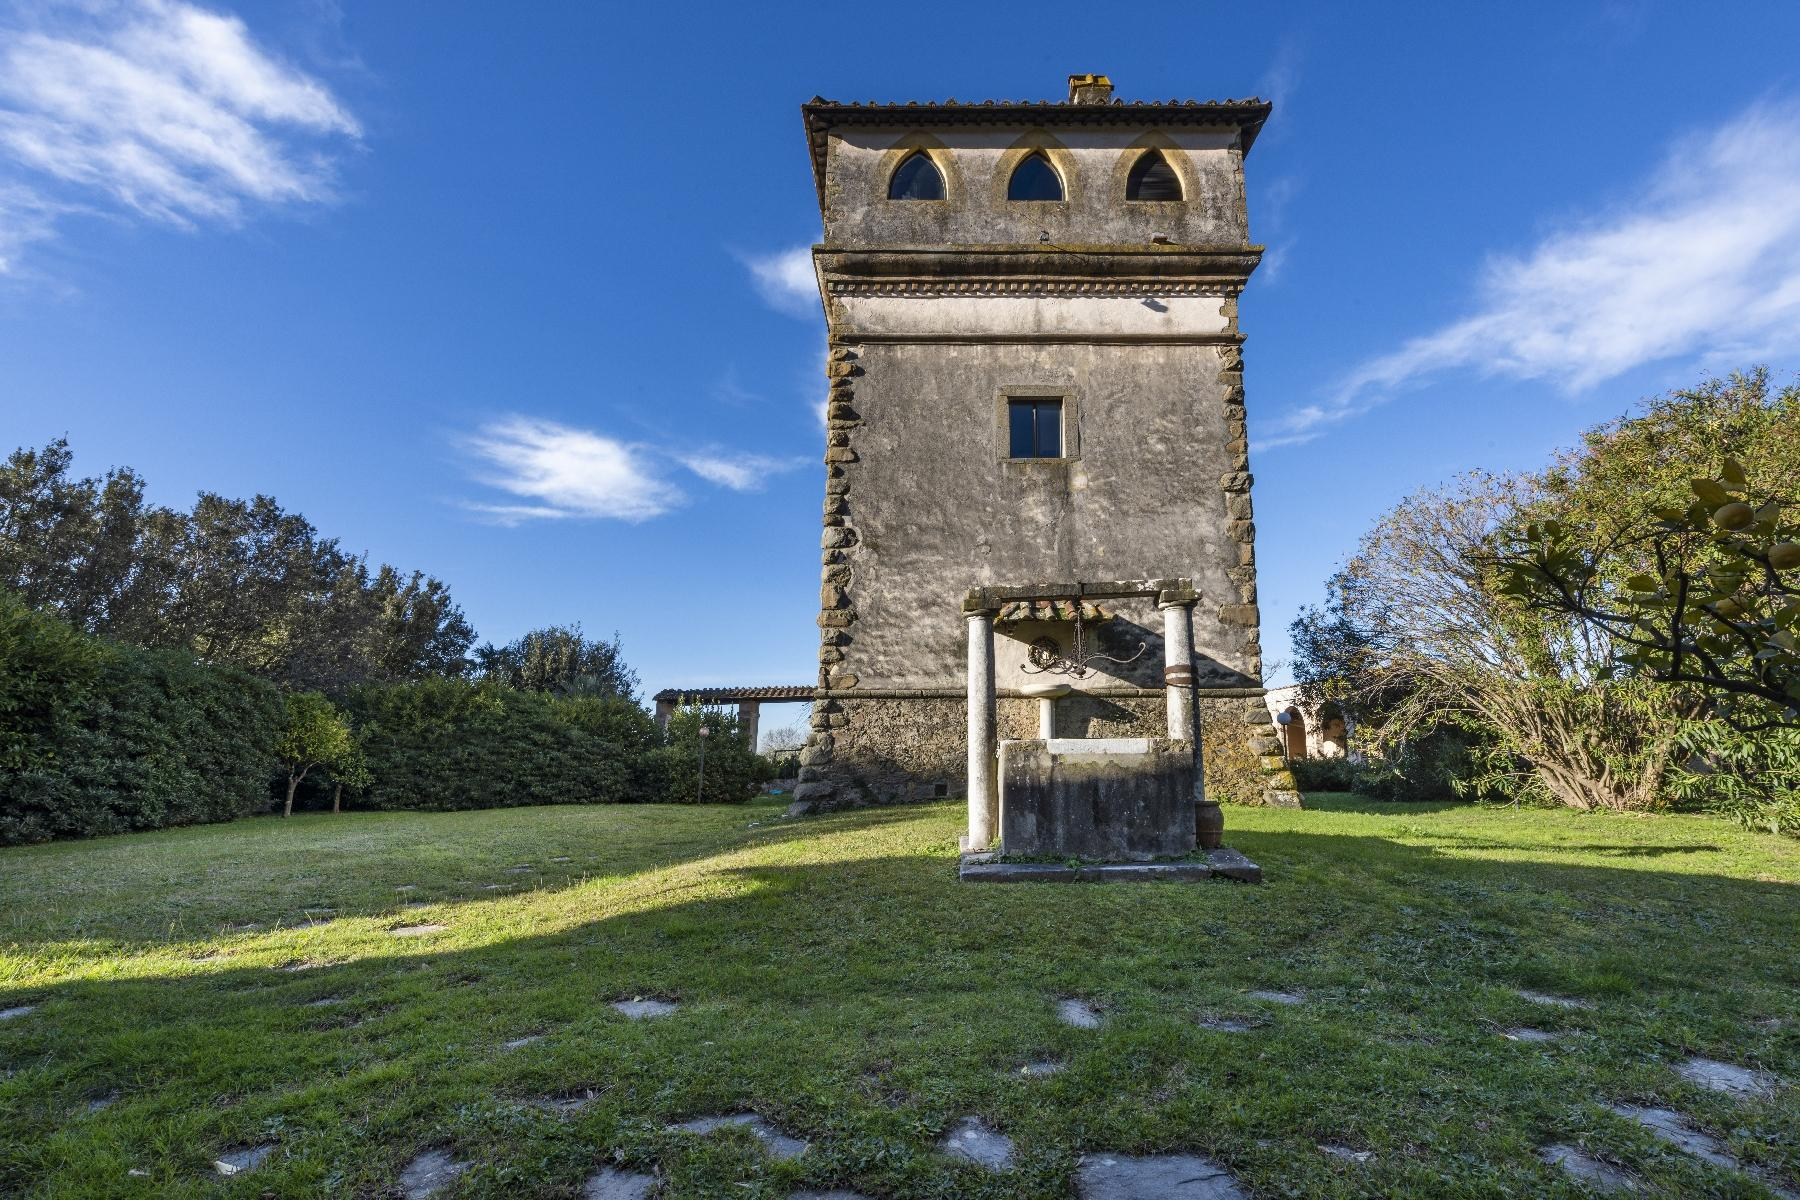 Stunning historic Villa with tower in Camaiore - 2